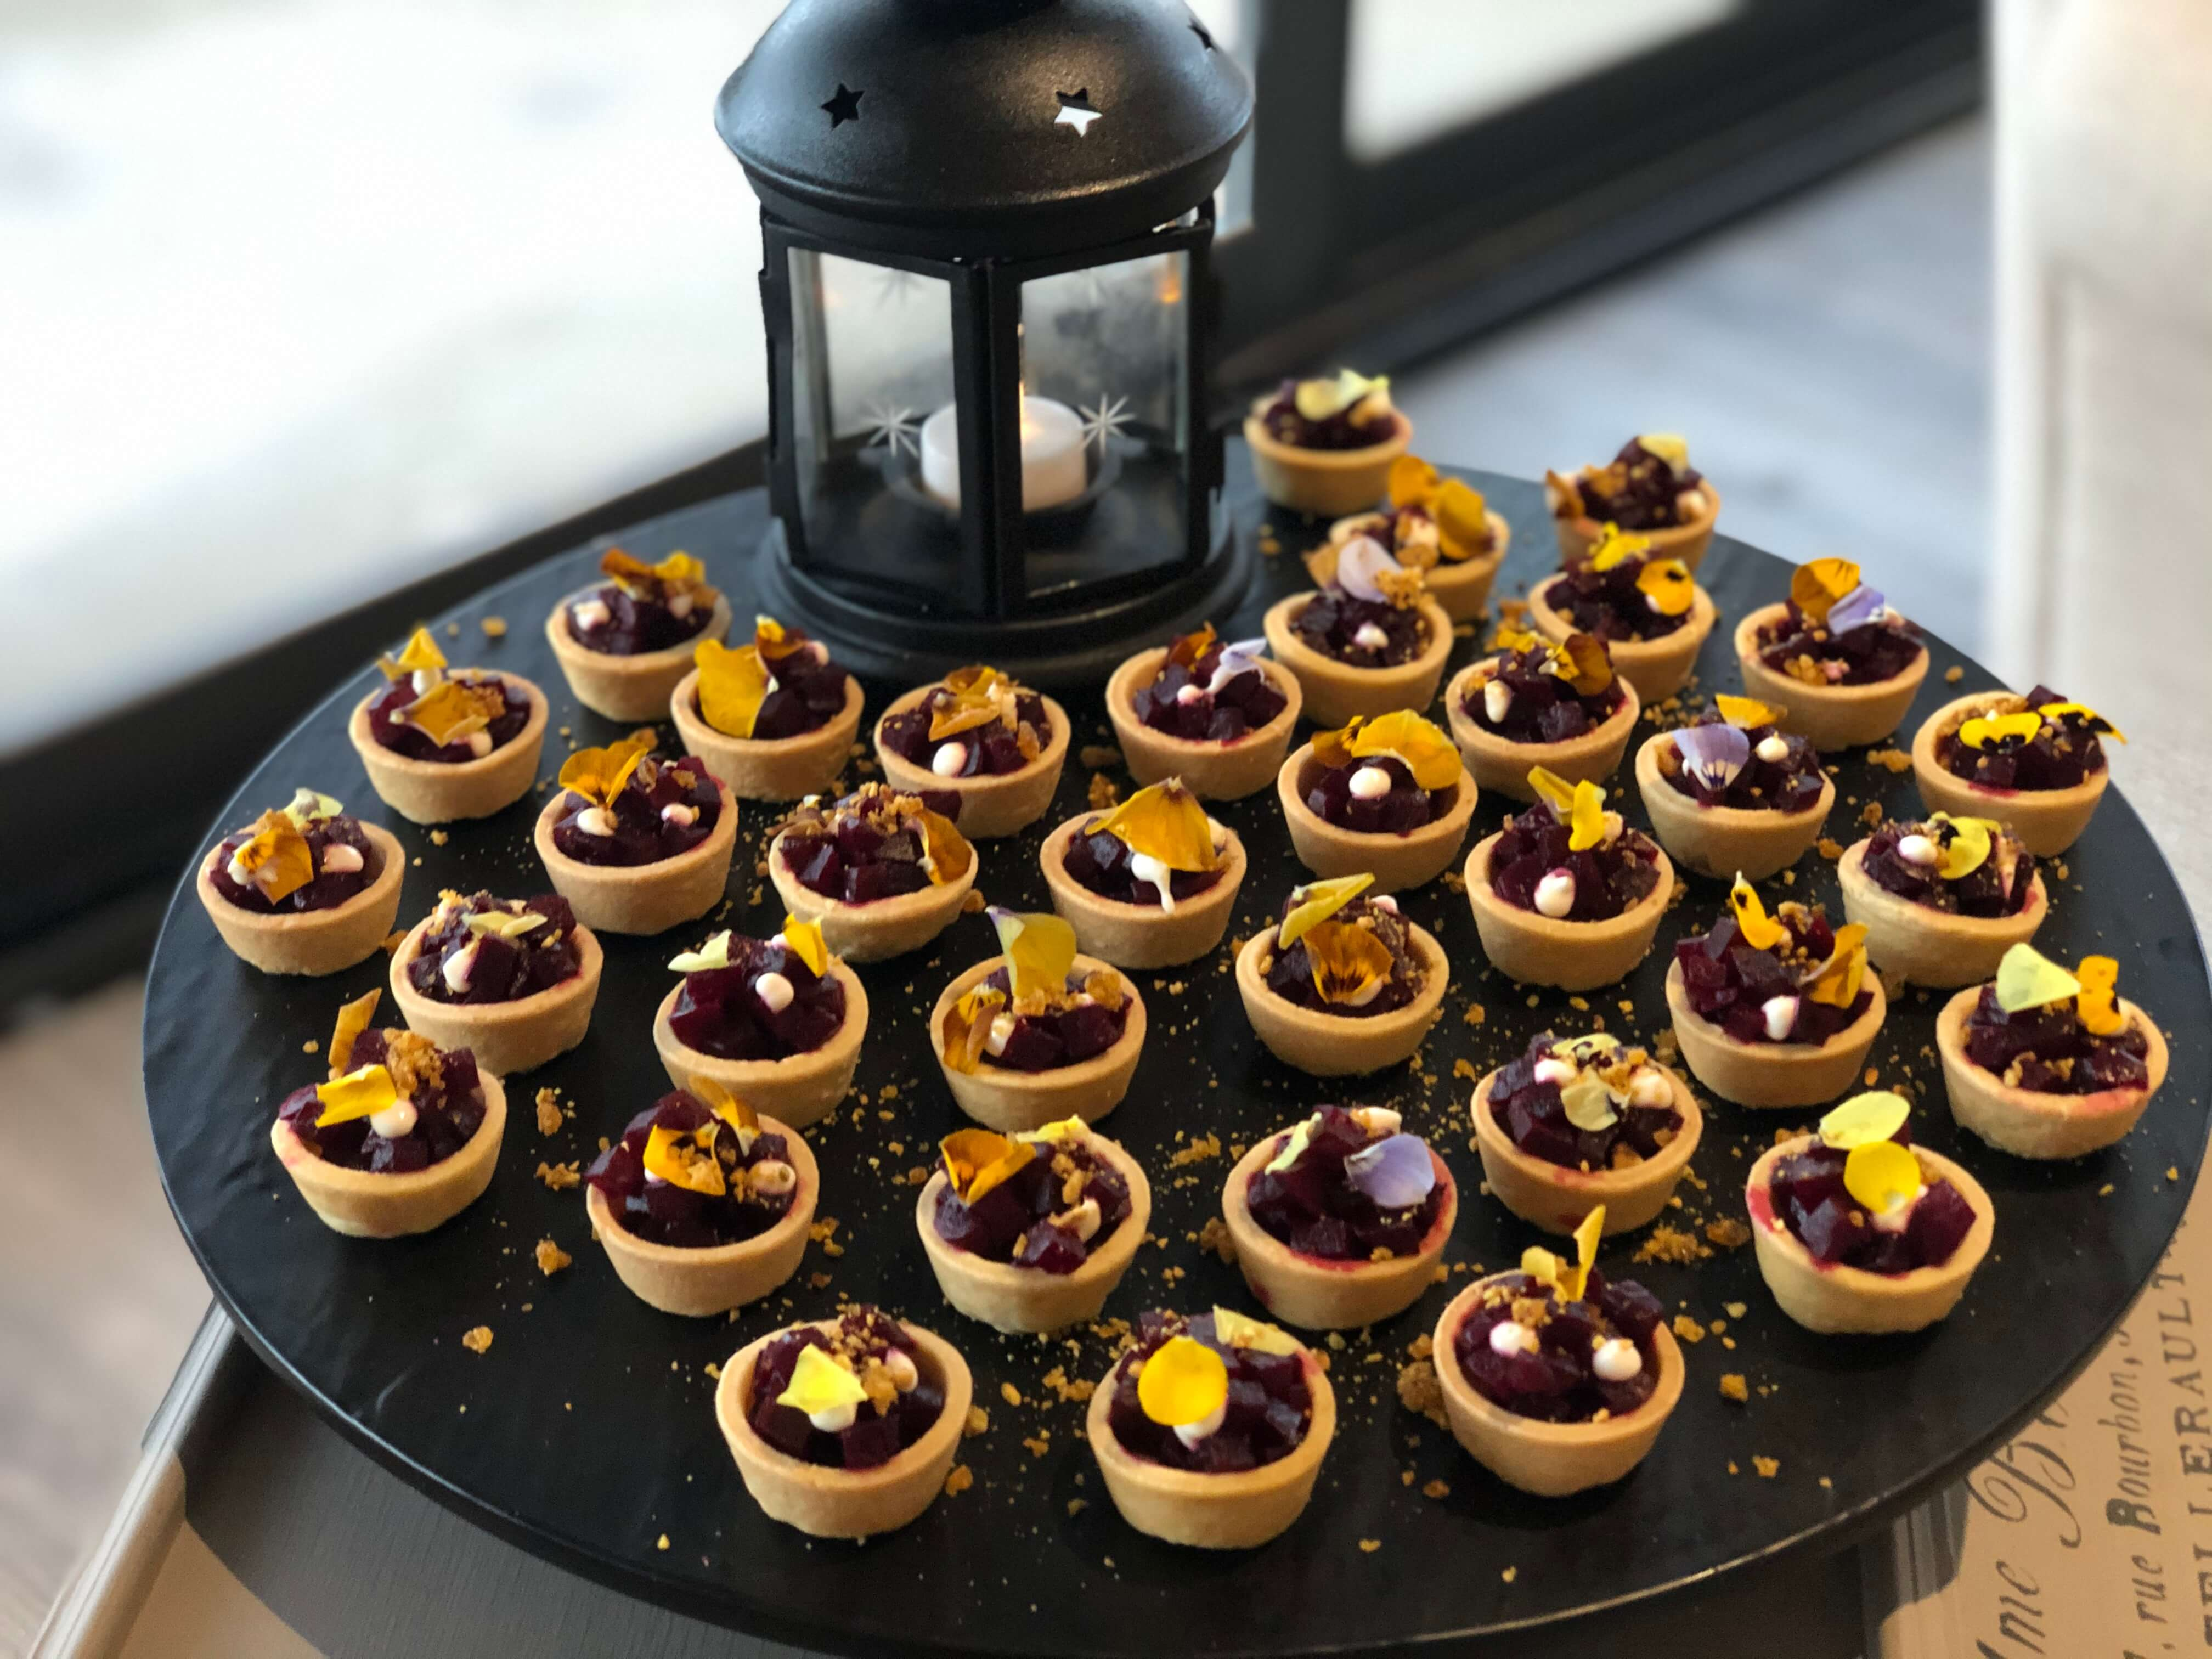 Canape catering Melbourne